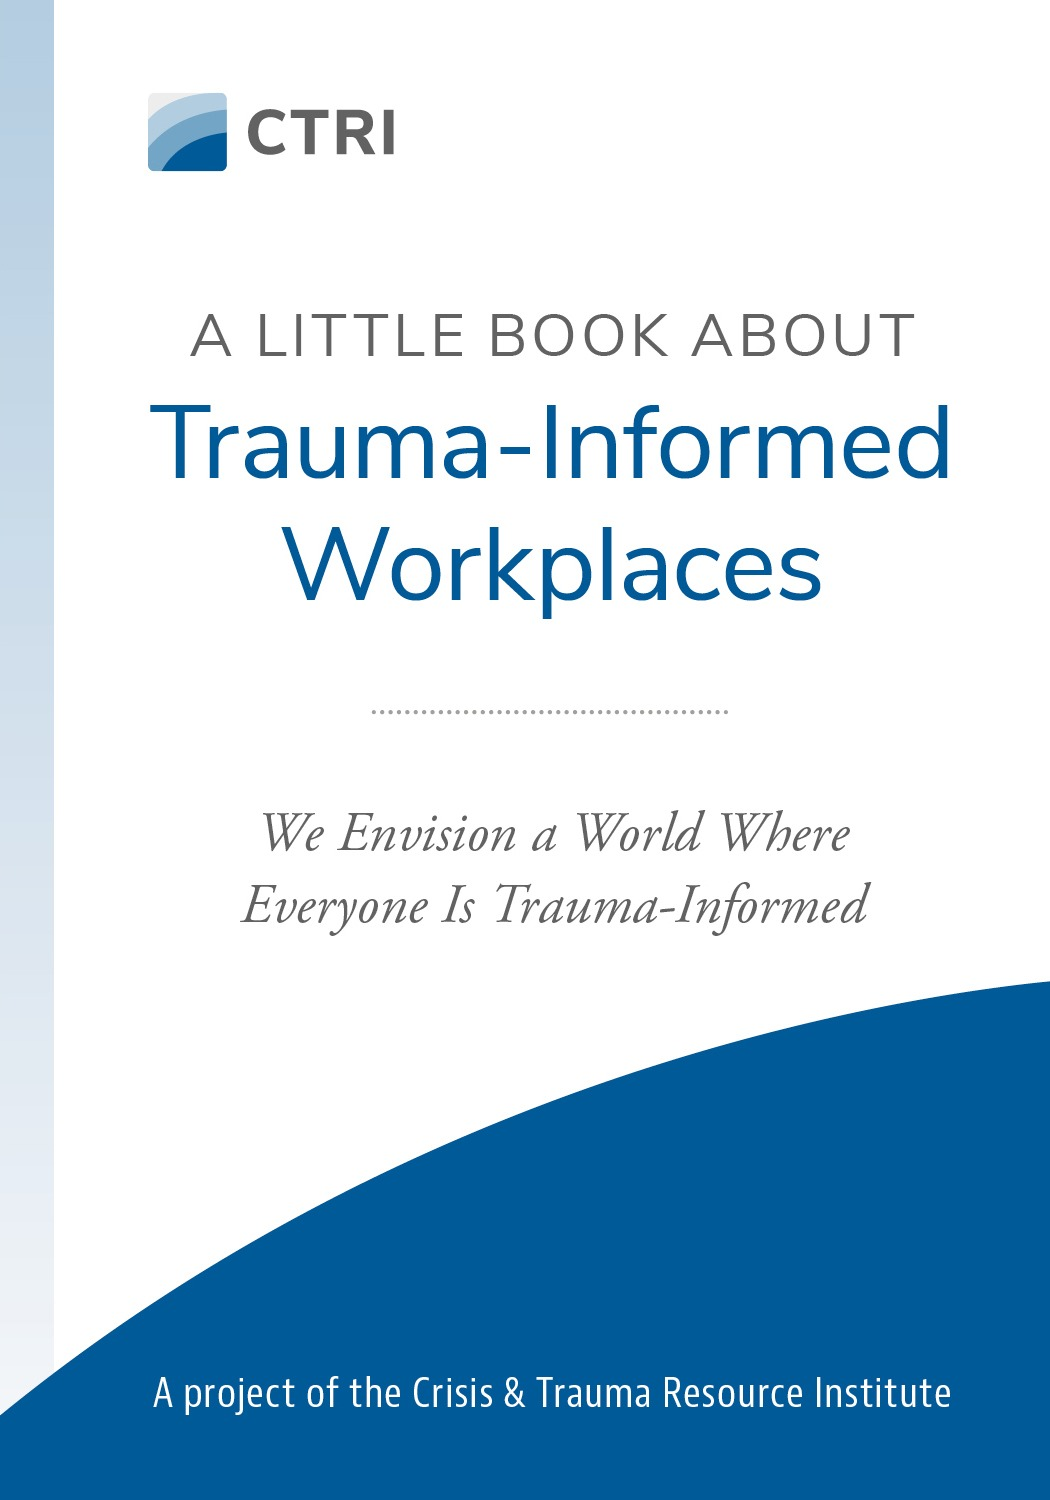 Trauma Informed Care e-manual